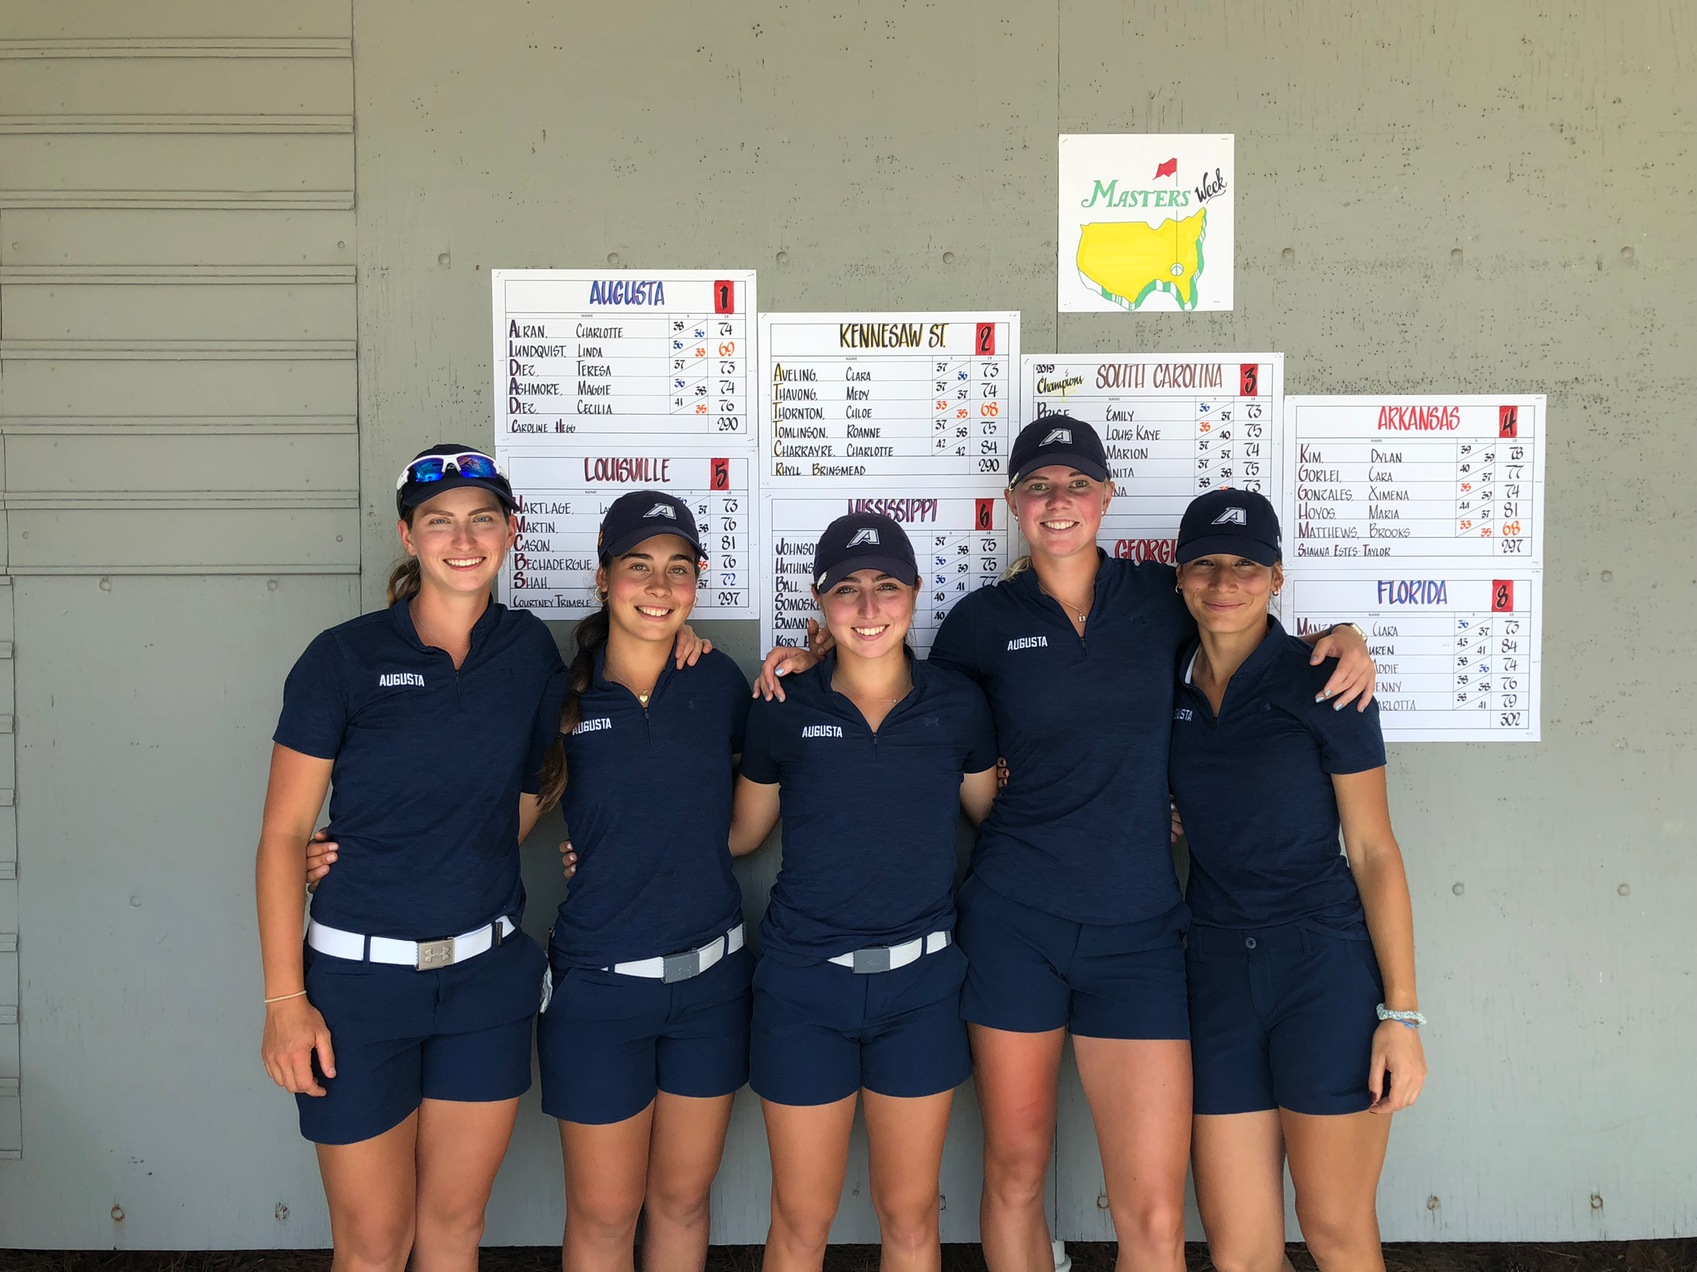 Augusta Wins Stroke Play, Finishes Runner-Up In Match Play At Liz Murphey